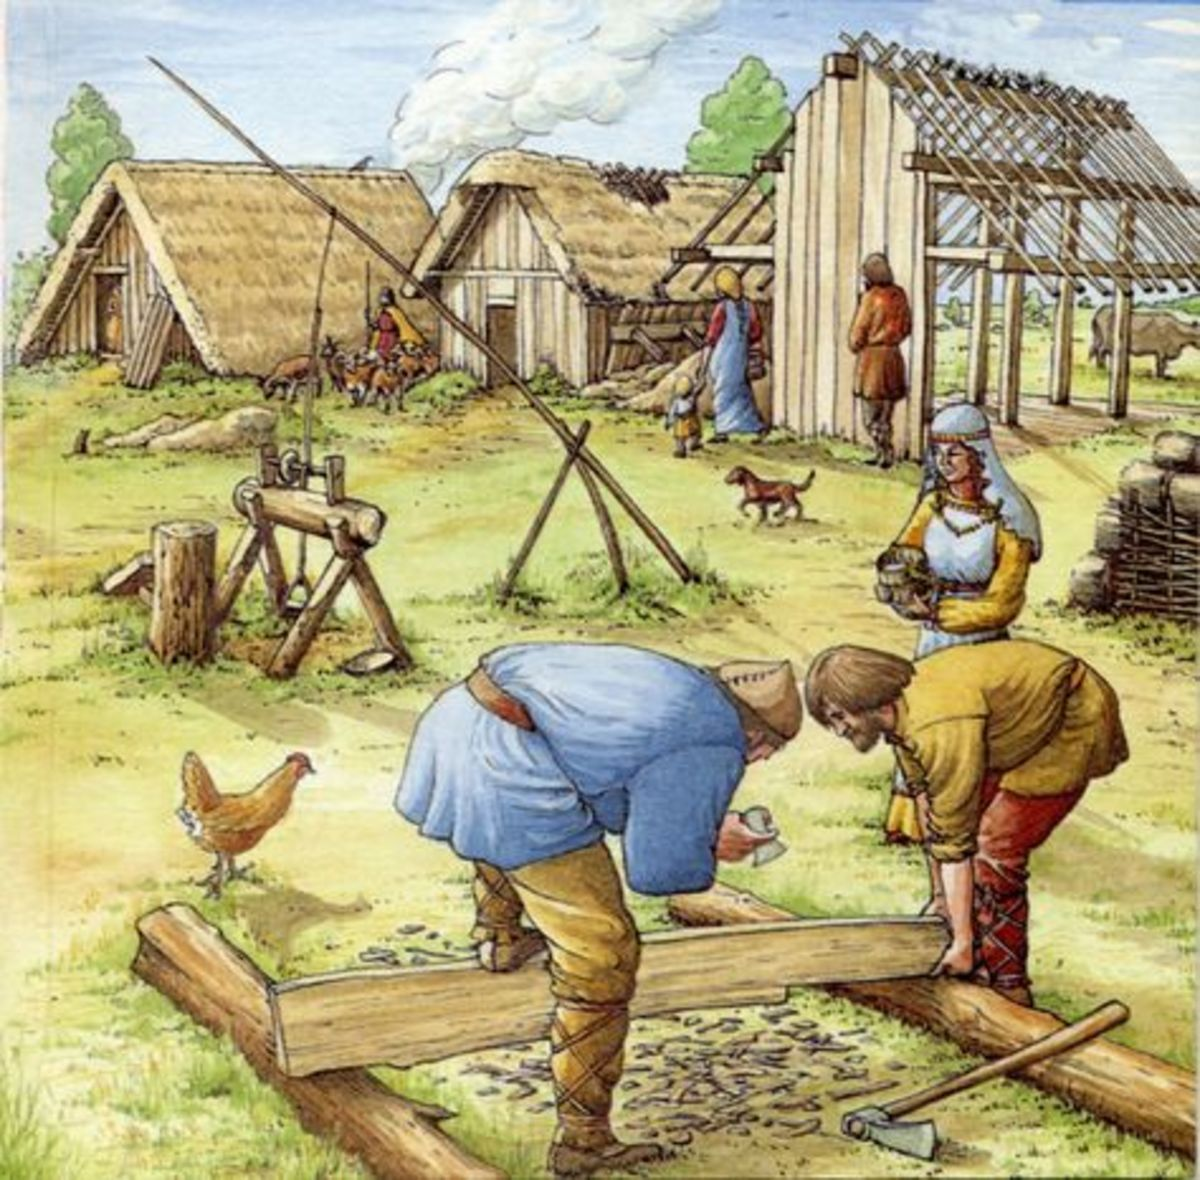 Working outdoors at the manor - repair or new building work was always there for the employment of craftsmen